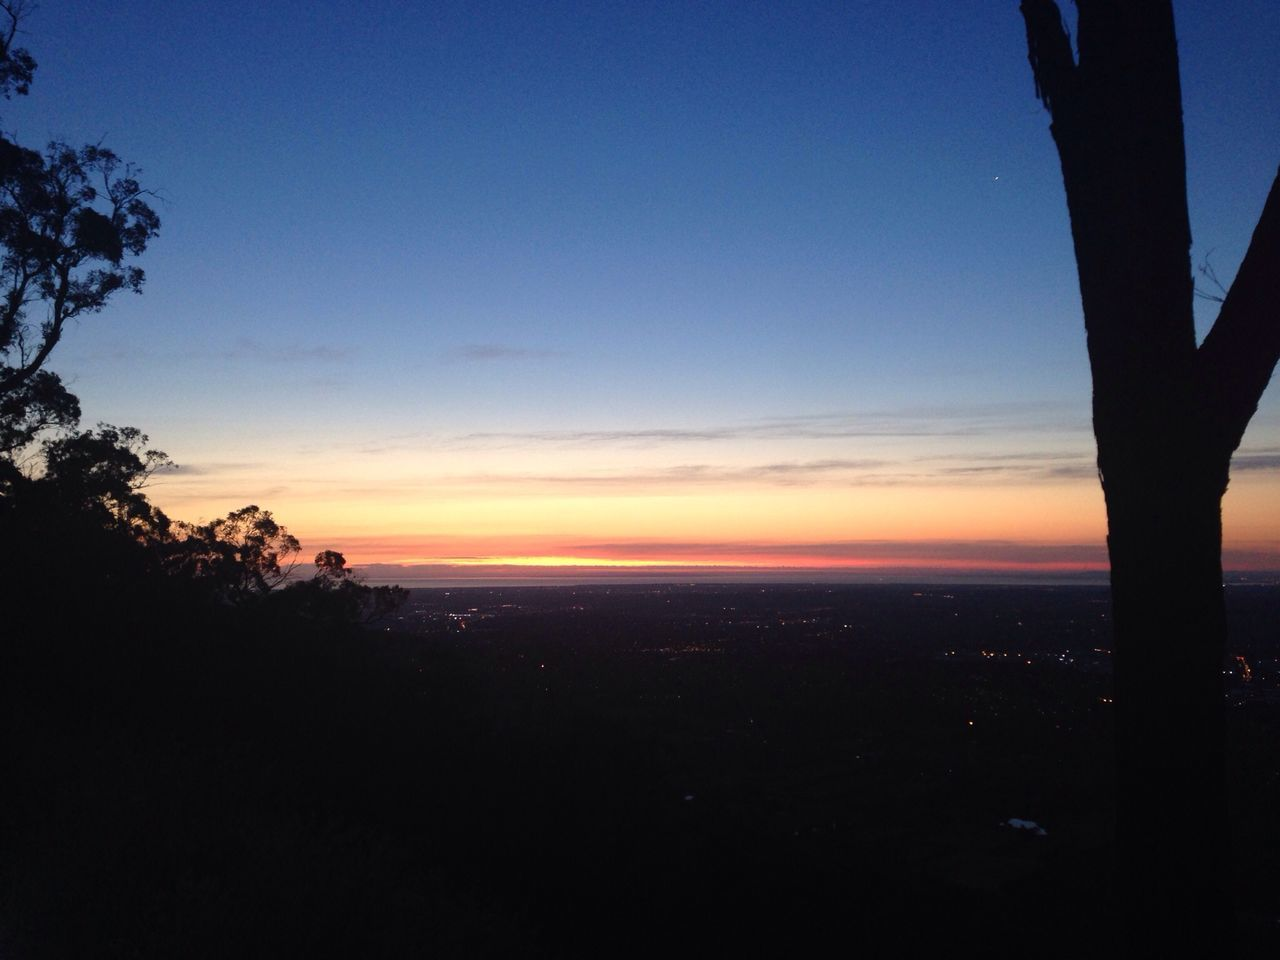 sunset, silhouette, nature, tranquil scene, sky, beauty in nature, scenics, tranquility, tree, outdoors, landscape, no people, day